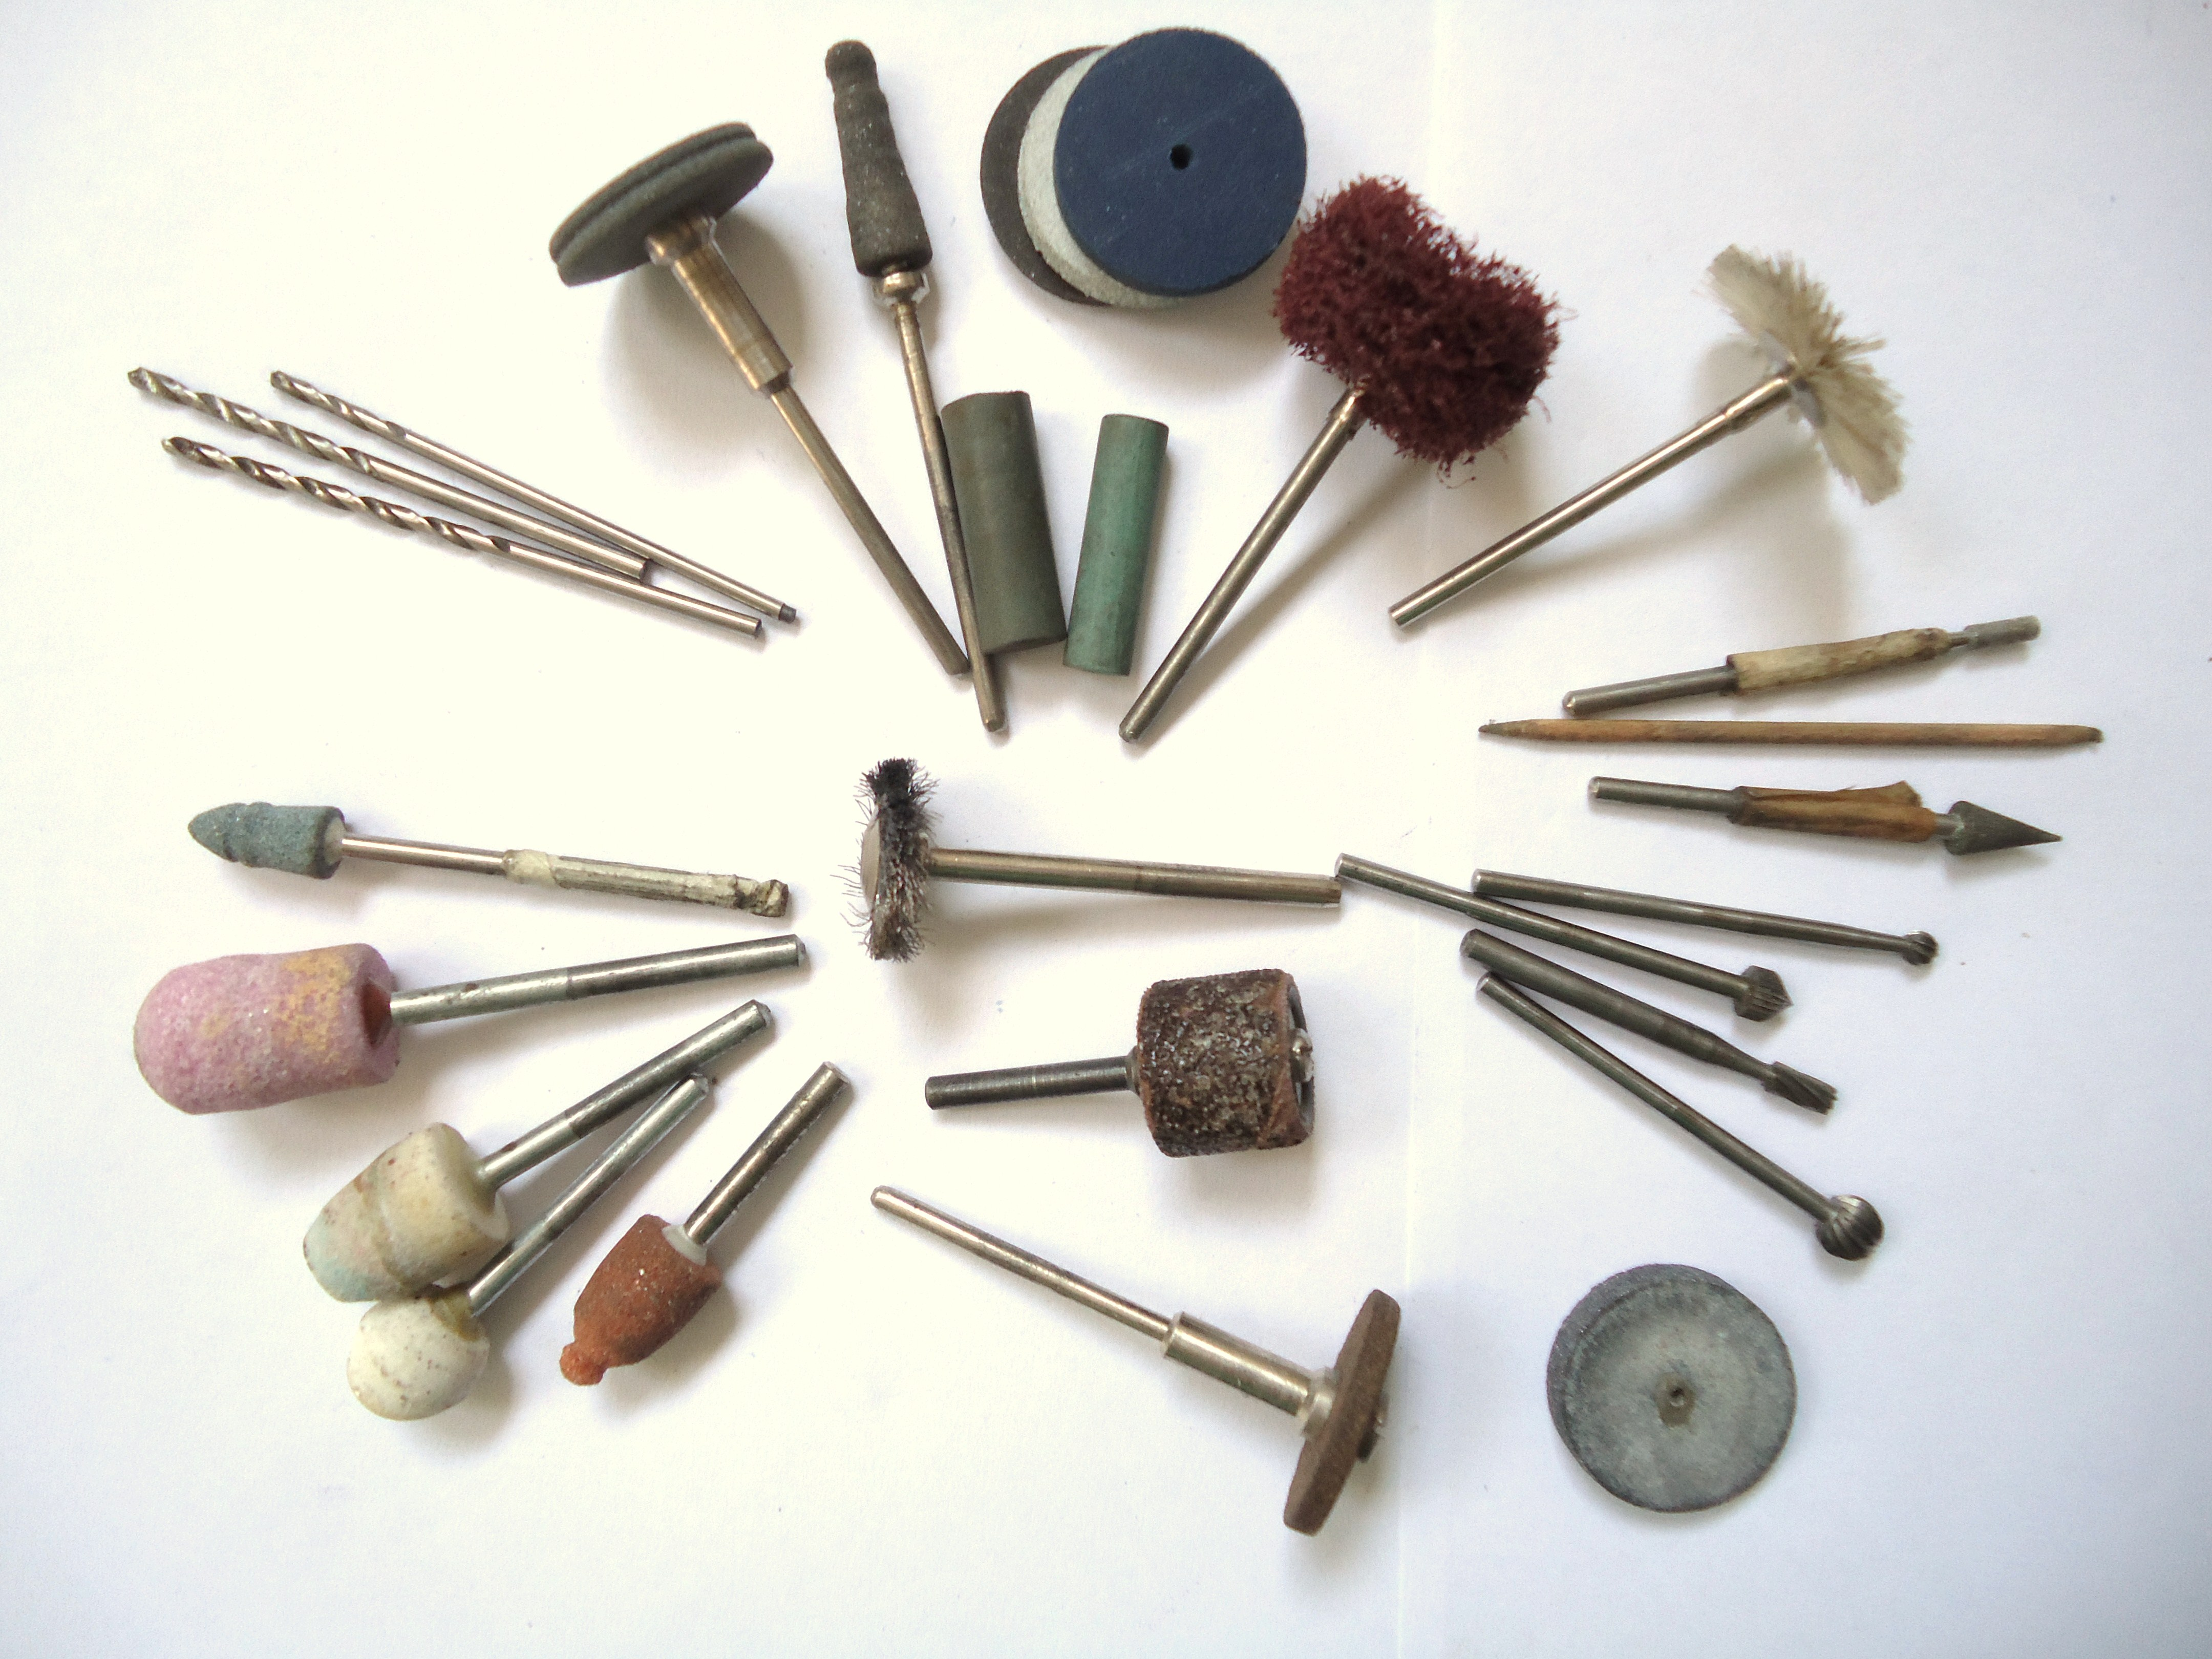 File:Some jewellery tools.jpg - Wikimedia Commons